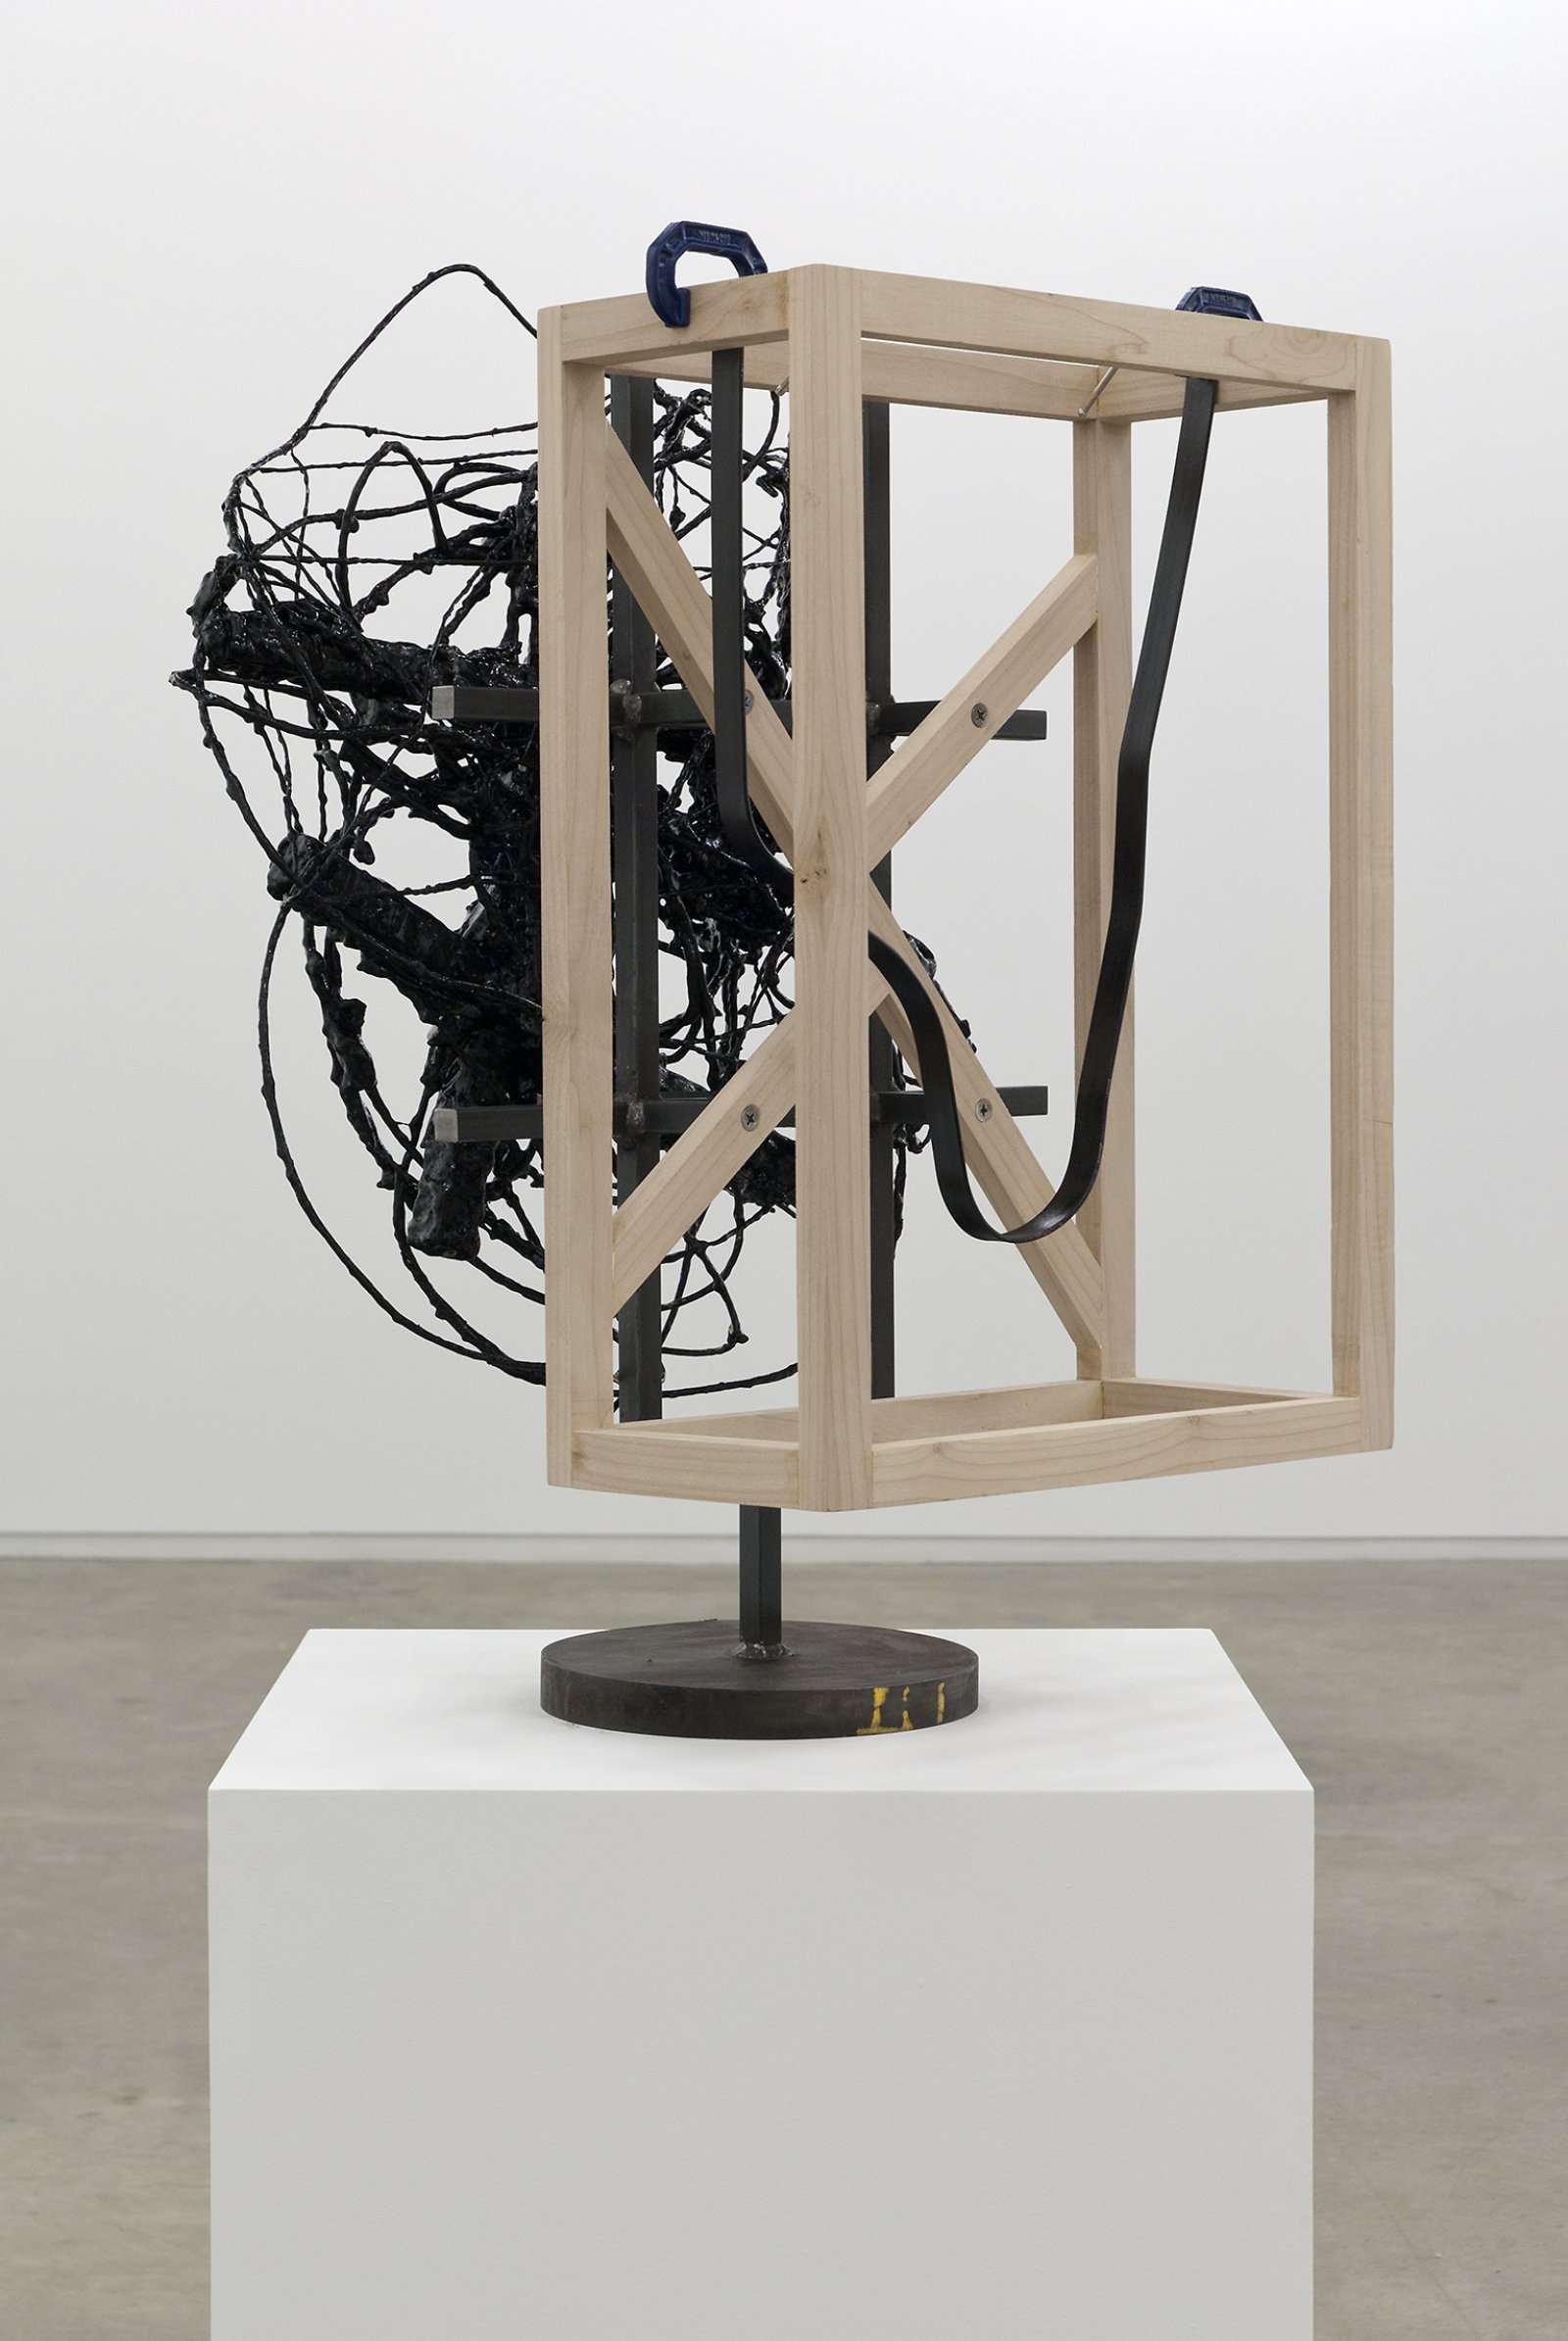 Damian Moppett, Untitled (detail), ​2010, steel, wood, wire, plaster, enamel, clamps, 27 x 18 x 18 in. (69 x 46 x 44 cm) by Damian Moppett